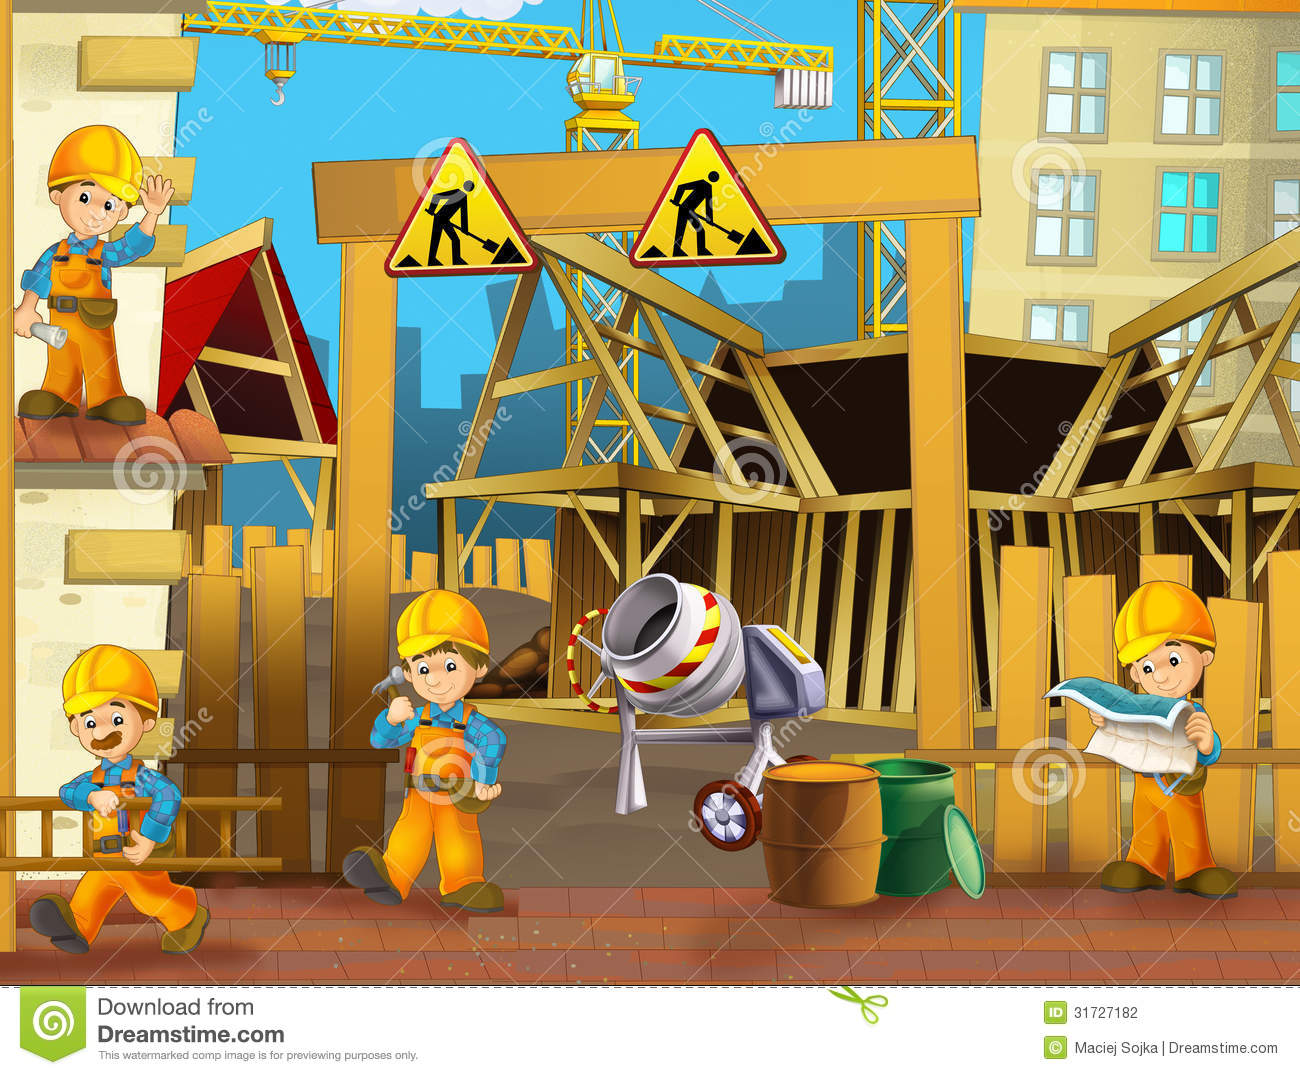 Building construction site clipart png freeuse library Construction Site Clipart - Clipart Kid png freeuse library